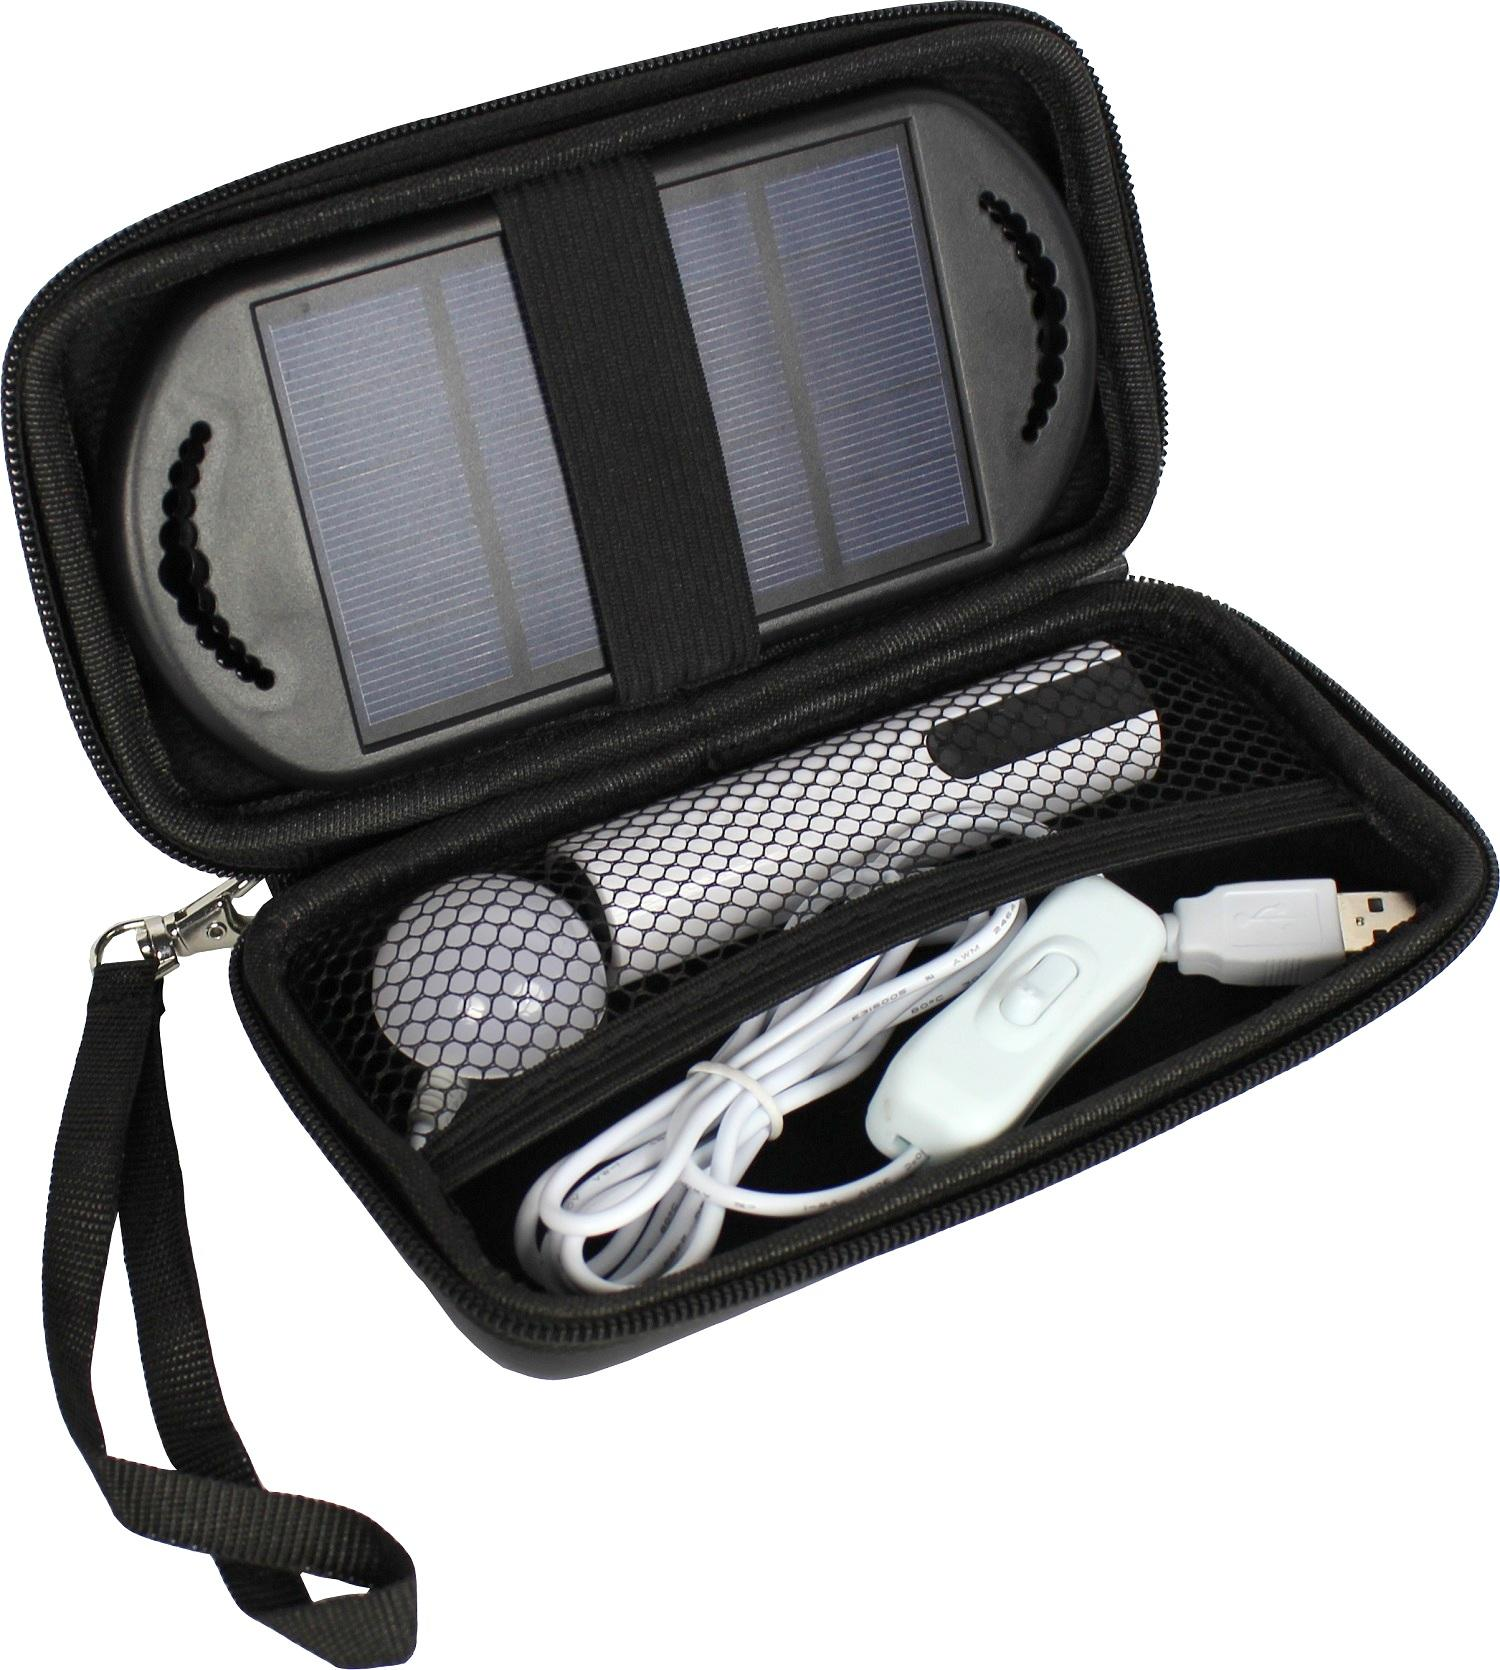 POWERplus Anaconda Portable Solar Lighting System.